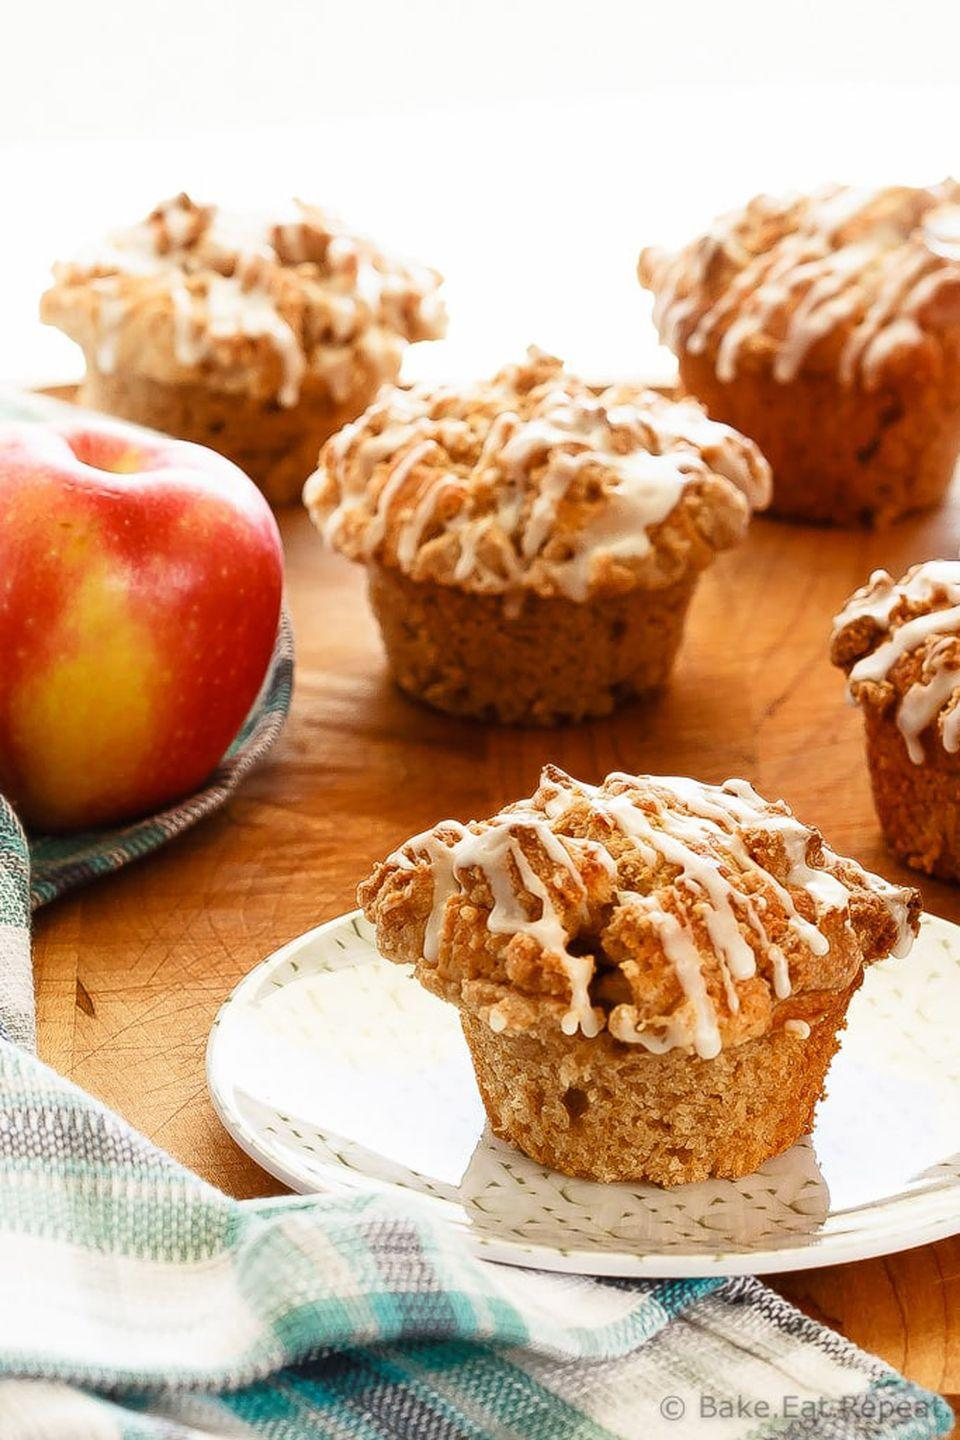 "<p>Be generous with the brown sugar crumble and sweet glaze; it's the best part of these muffins.</p><p><strong>Get the tutorial at <a href=""https://bake-eat-repeat.com/apple-muffins-crumb-topping-recipe/"" rel=""nofollow noopener"" target=""_blank"" data-ylk=""slk:Bake. Eat. Repeat"" class=""link rapid-noclick-resp"">Bake. Eat. Repeat</a>.</strong><br></p><p><a class=""link rapid-noclick-resp"" href=""https://www.amazon.com/dp/B07HYRB4P2?tag=syn-yahoo-20&ascsubtag=%5Bartid%7C10050.g.650%5Bsrc%7Cyahoo-us"" rel=""nofollow noopener"" target=""_blank"" data-ylk=""slk:SHOP MUFFIN PANS"">SHOP MUFFIN PANS</a><br></p>"